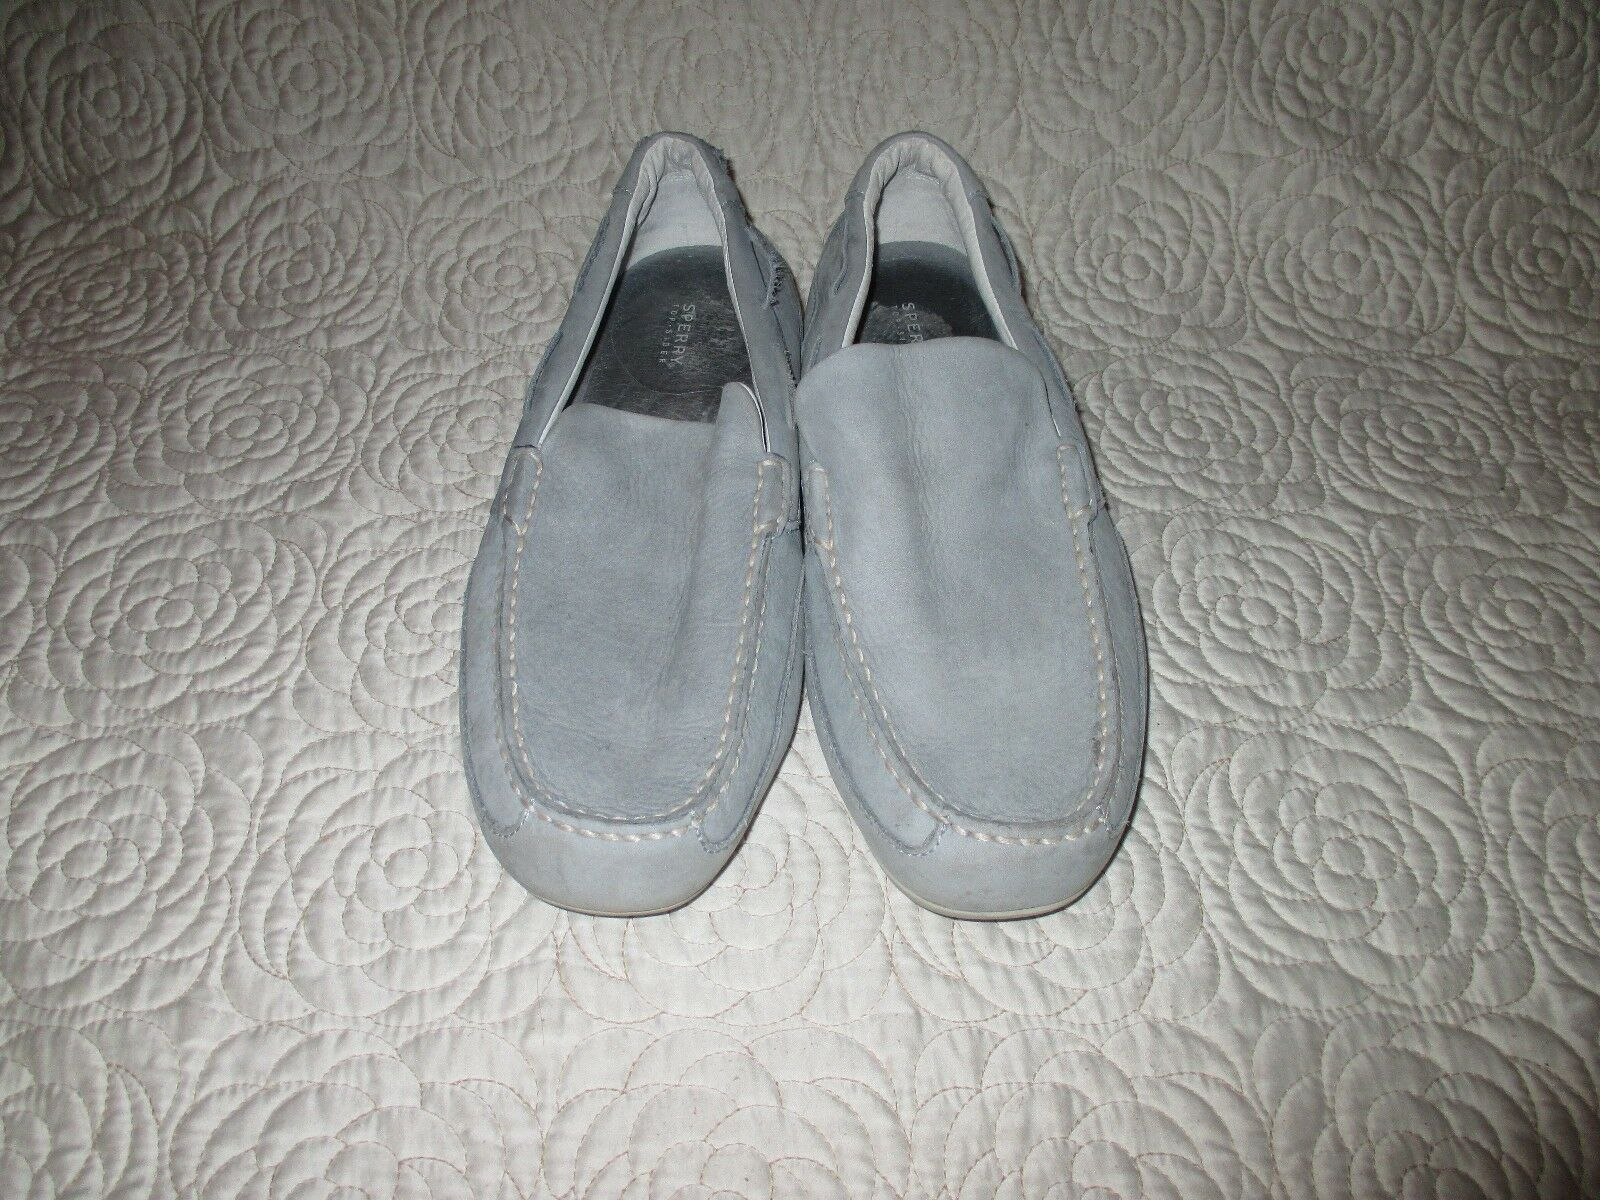 Uomo Loafers Sperry Leder Loafers Uomo SIZE 10.5 M 1983e0